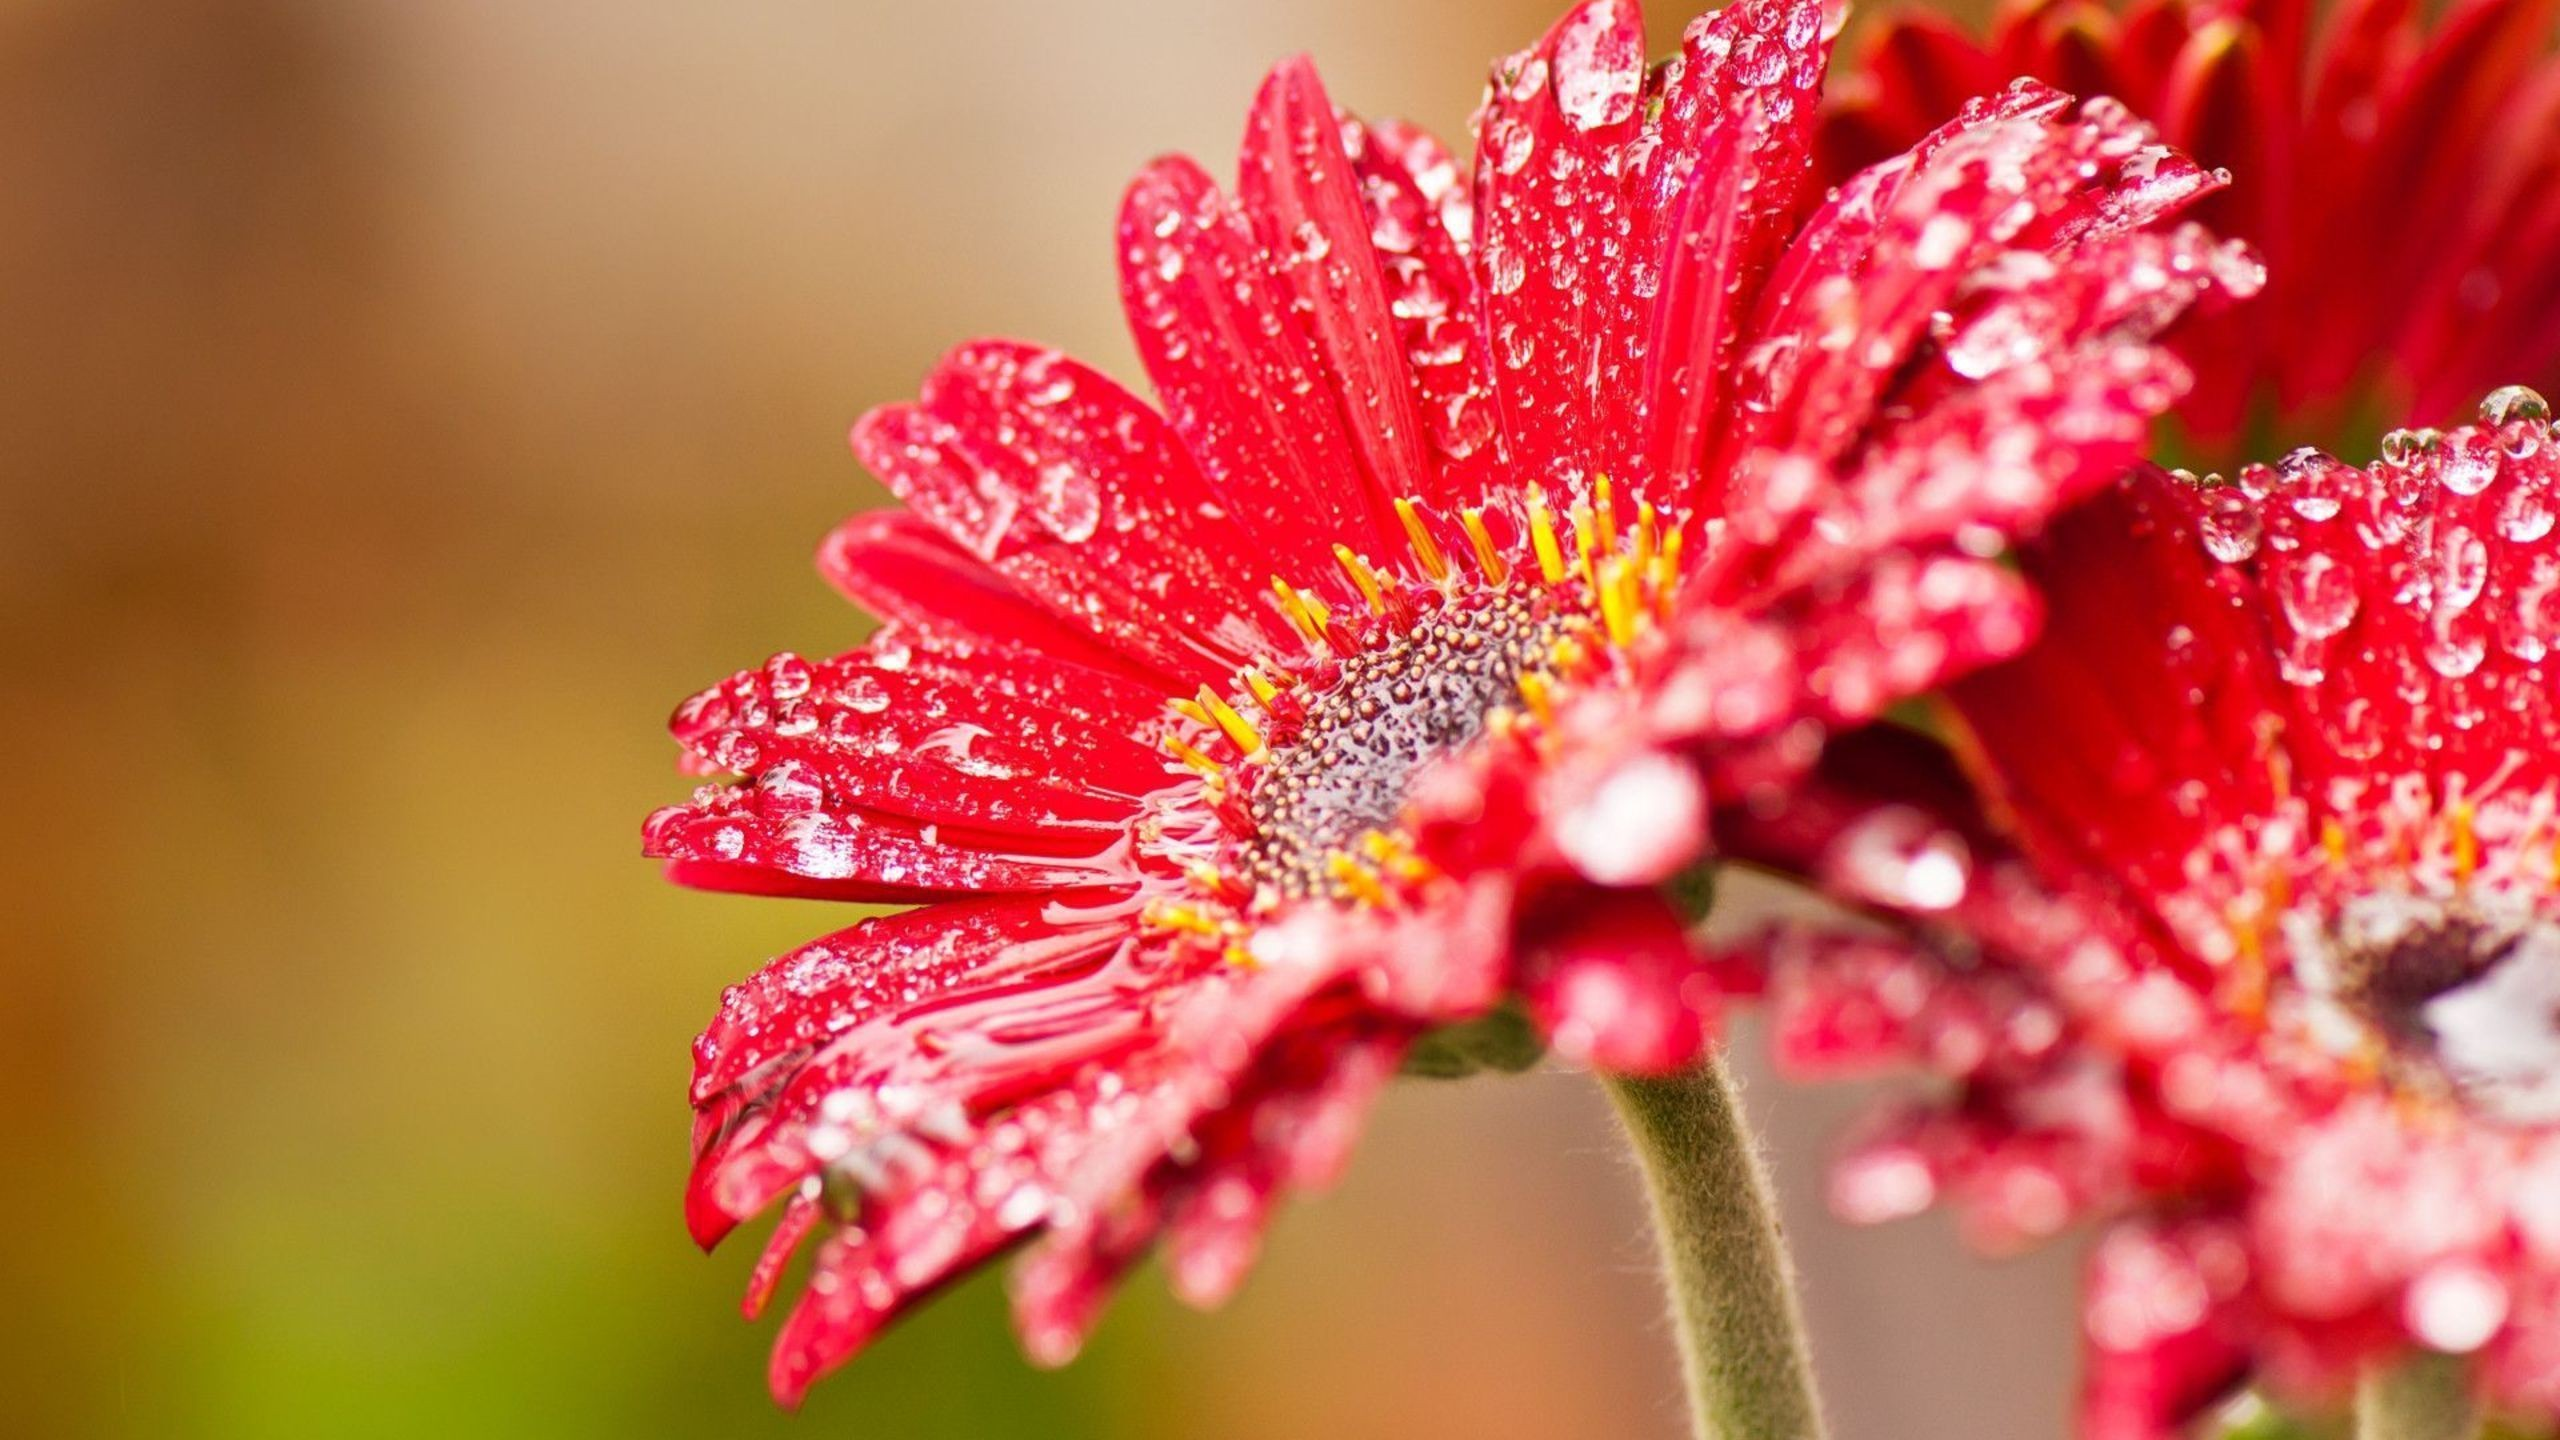 Stunning Red Gerberas Daisy in Macro Shot Hd Wallpaper